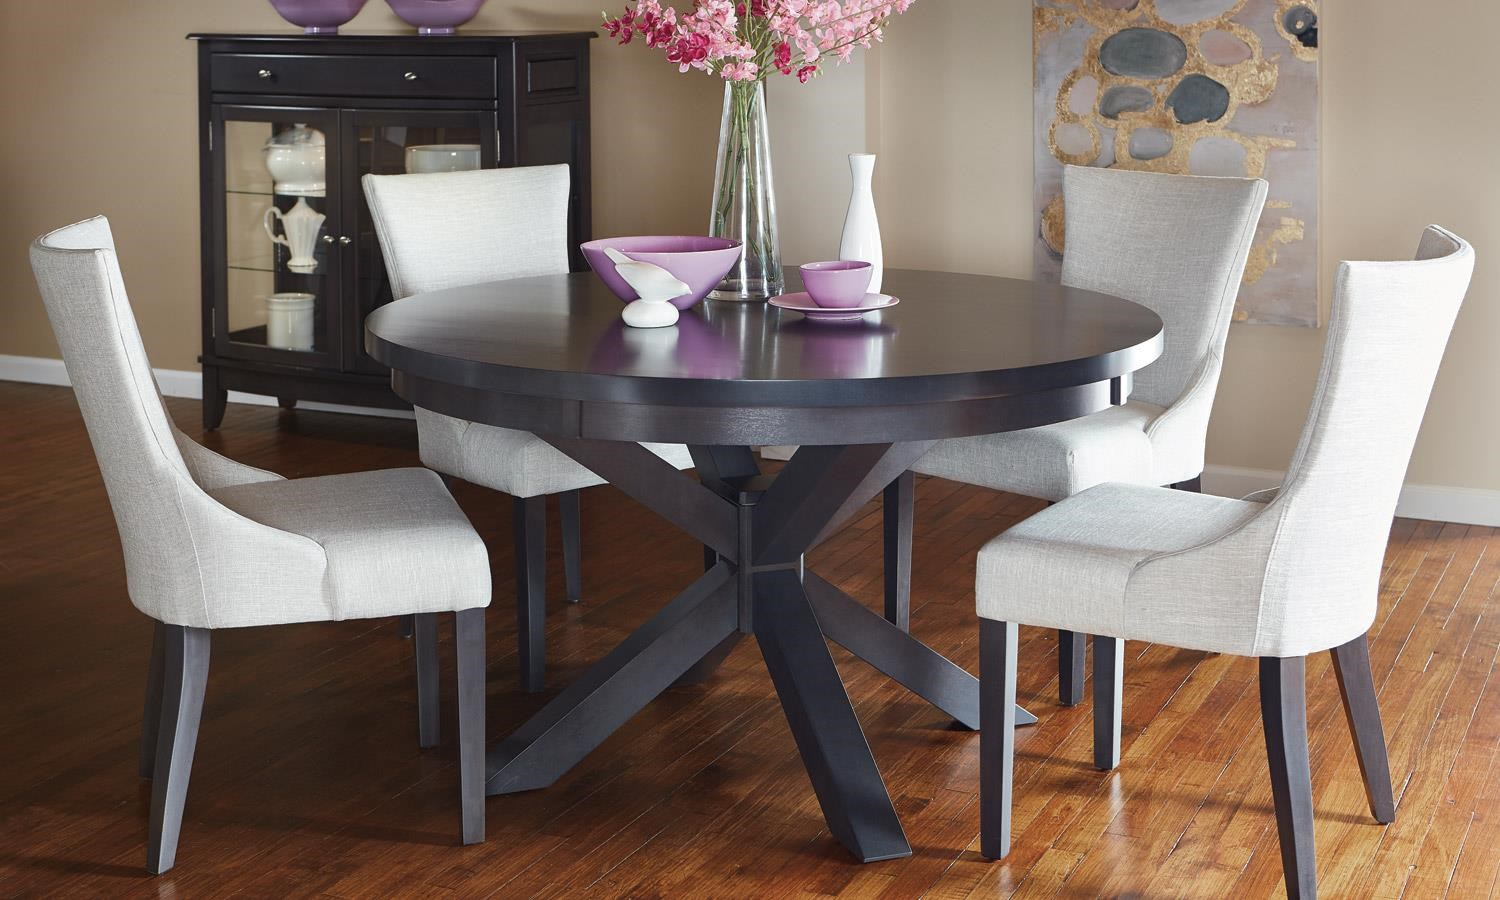 C-1522 Side Chair by Bermex at Stoney Creek Furniture